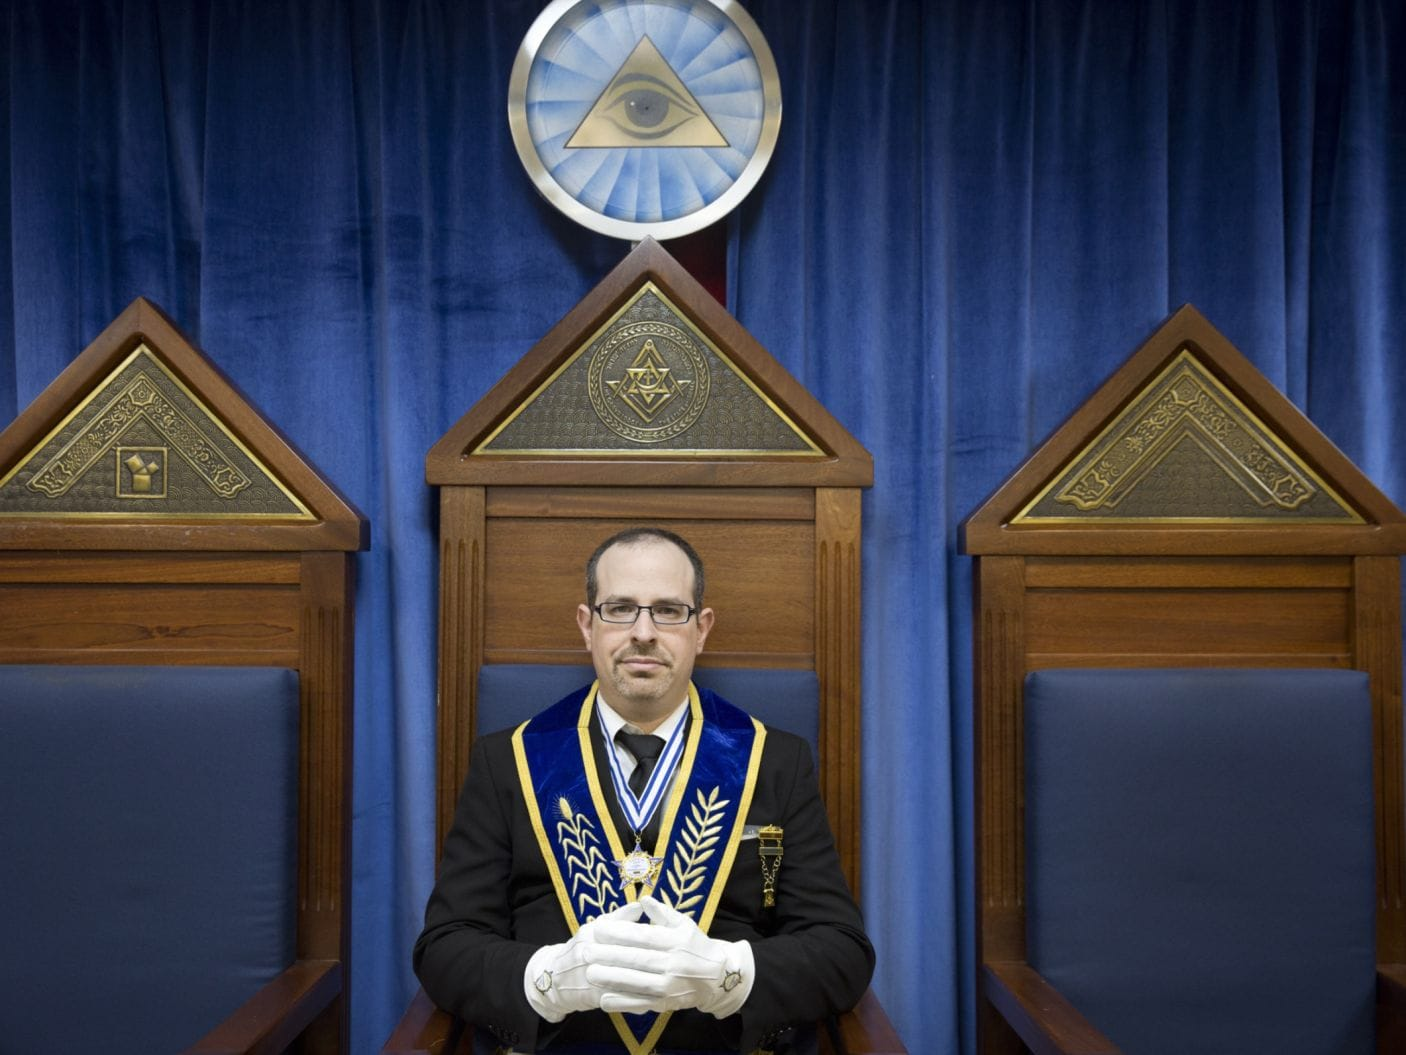 Roy G. Guttmann, a lawyer and the president of the Freemason Lodge Muffelmann Oman 29.